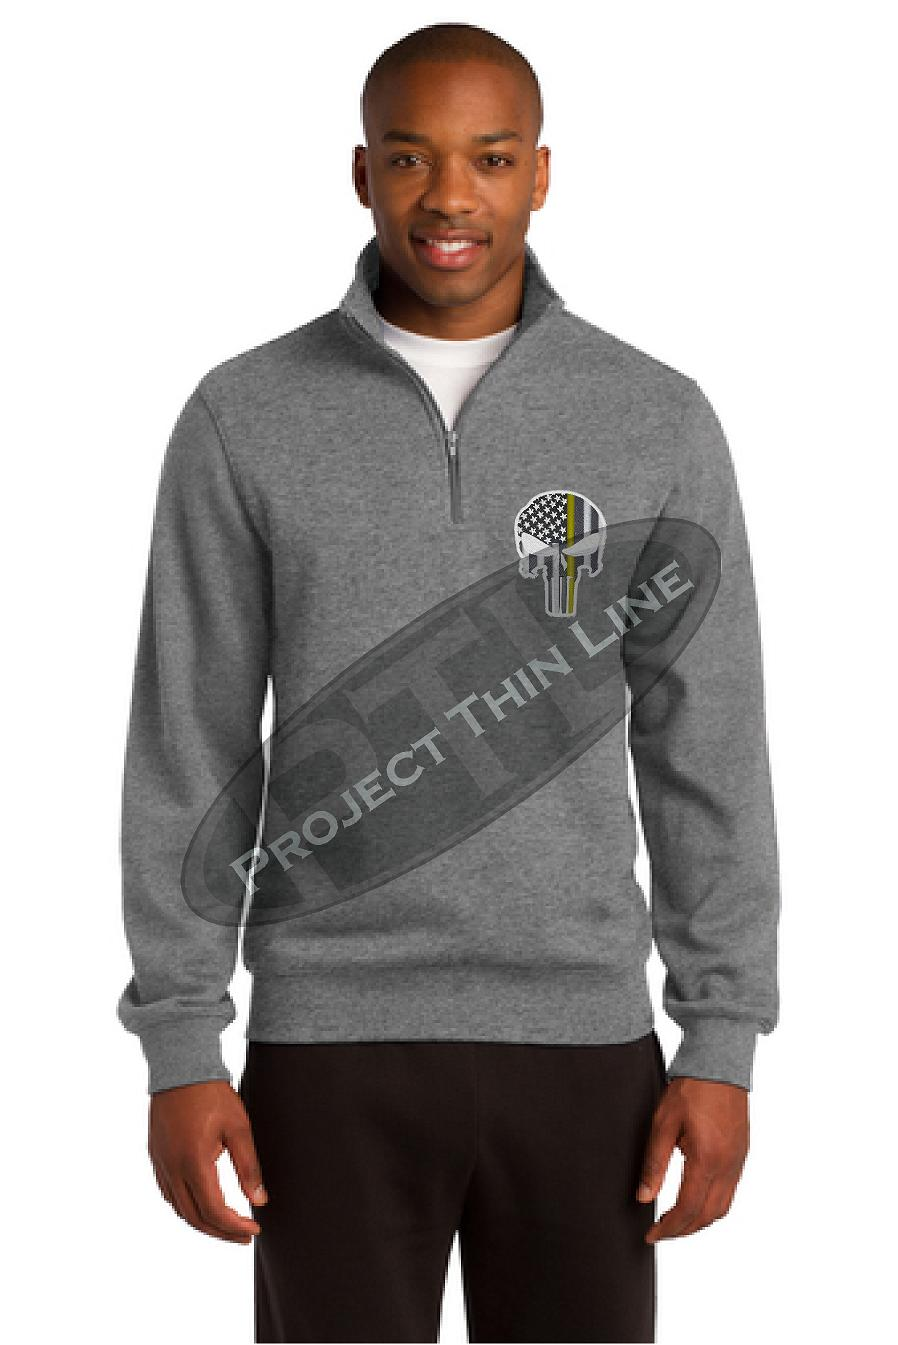 Grey Embroidered Thin GOLD Line Punisher Skull 1/4 Zip Fleece Sweatshirt